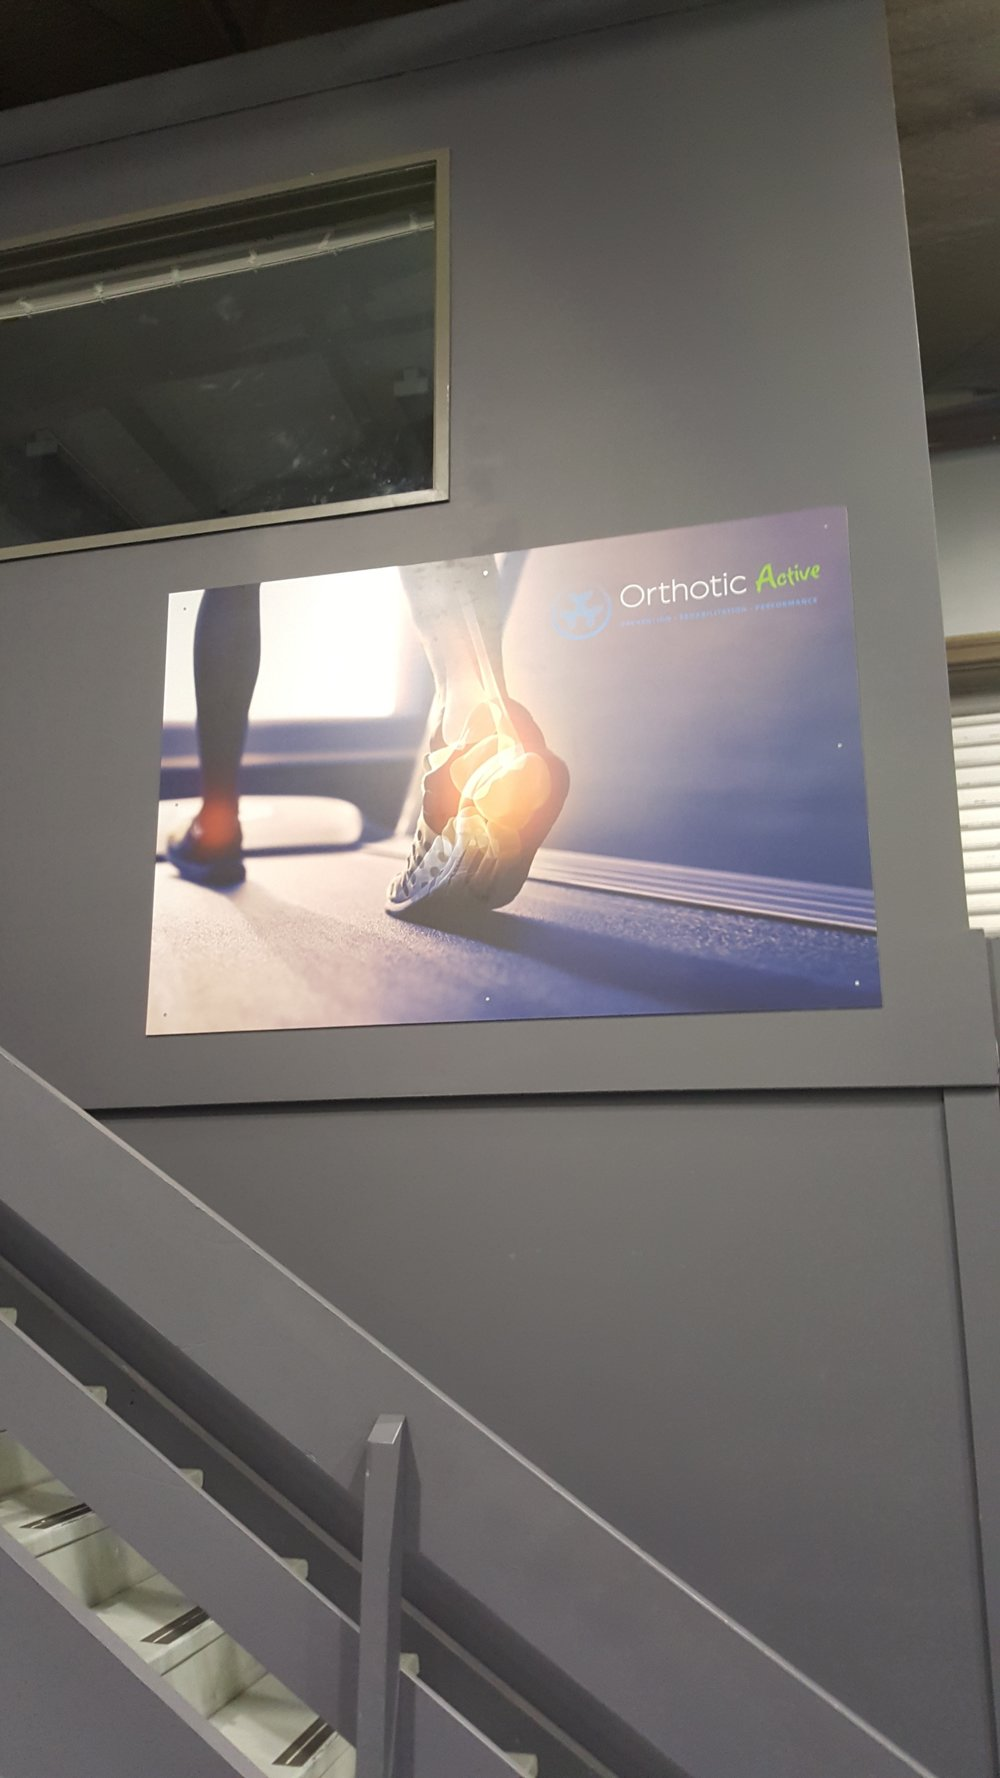 orthotic active